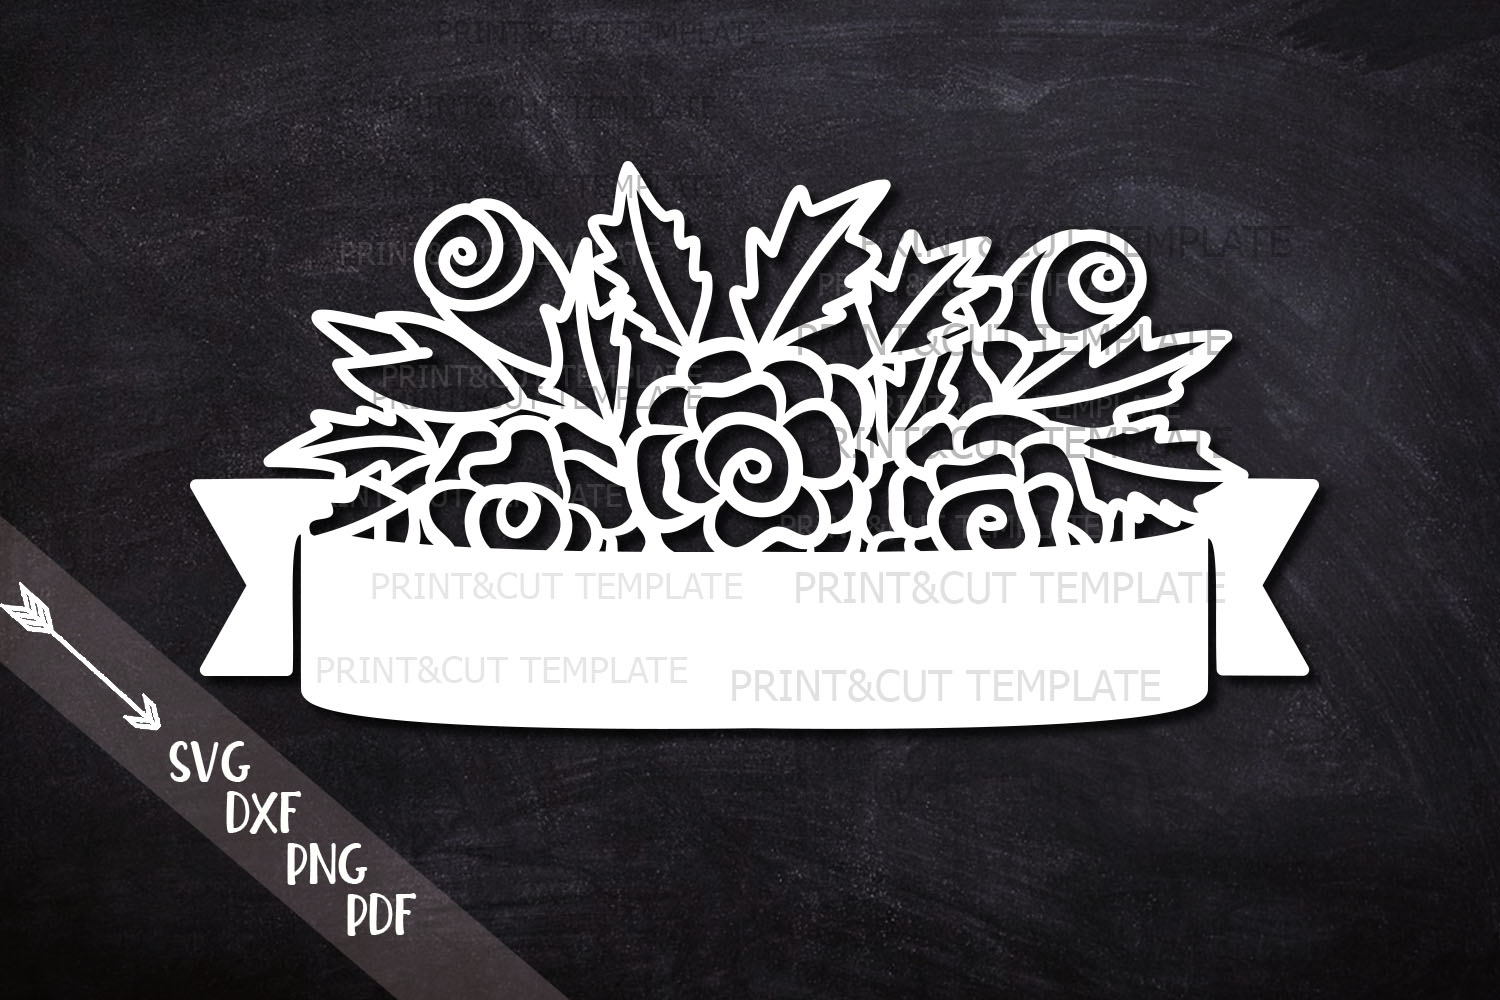 Download Free Flowers Banner Graphic By Cornelia Creative Fabrica for Cricut Explore, Silhouette and other cutting machines.